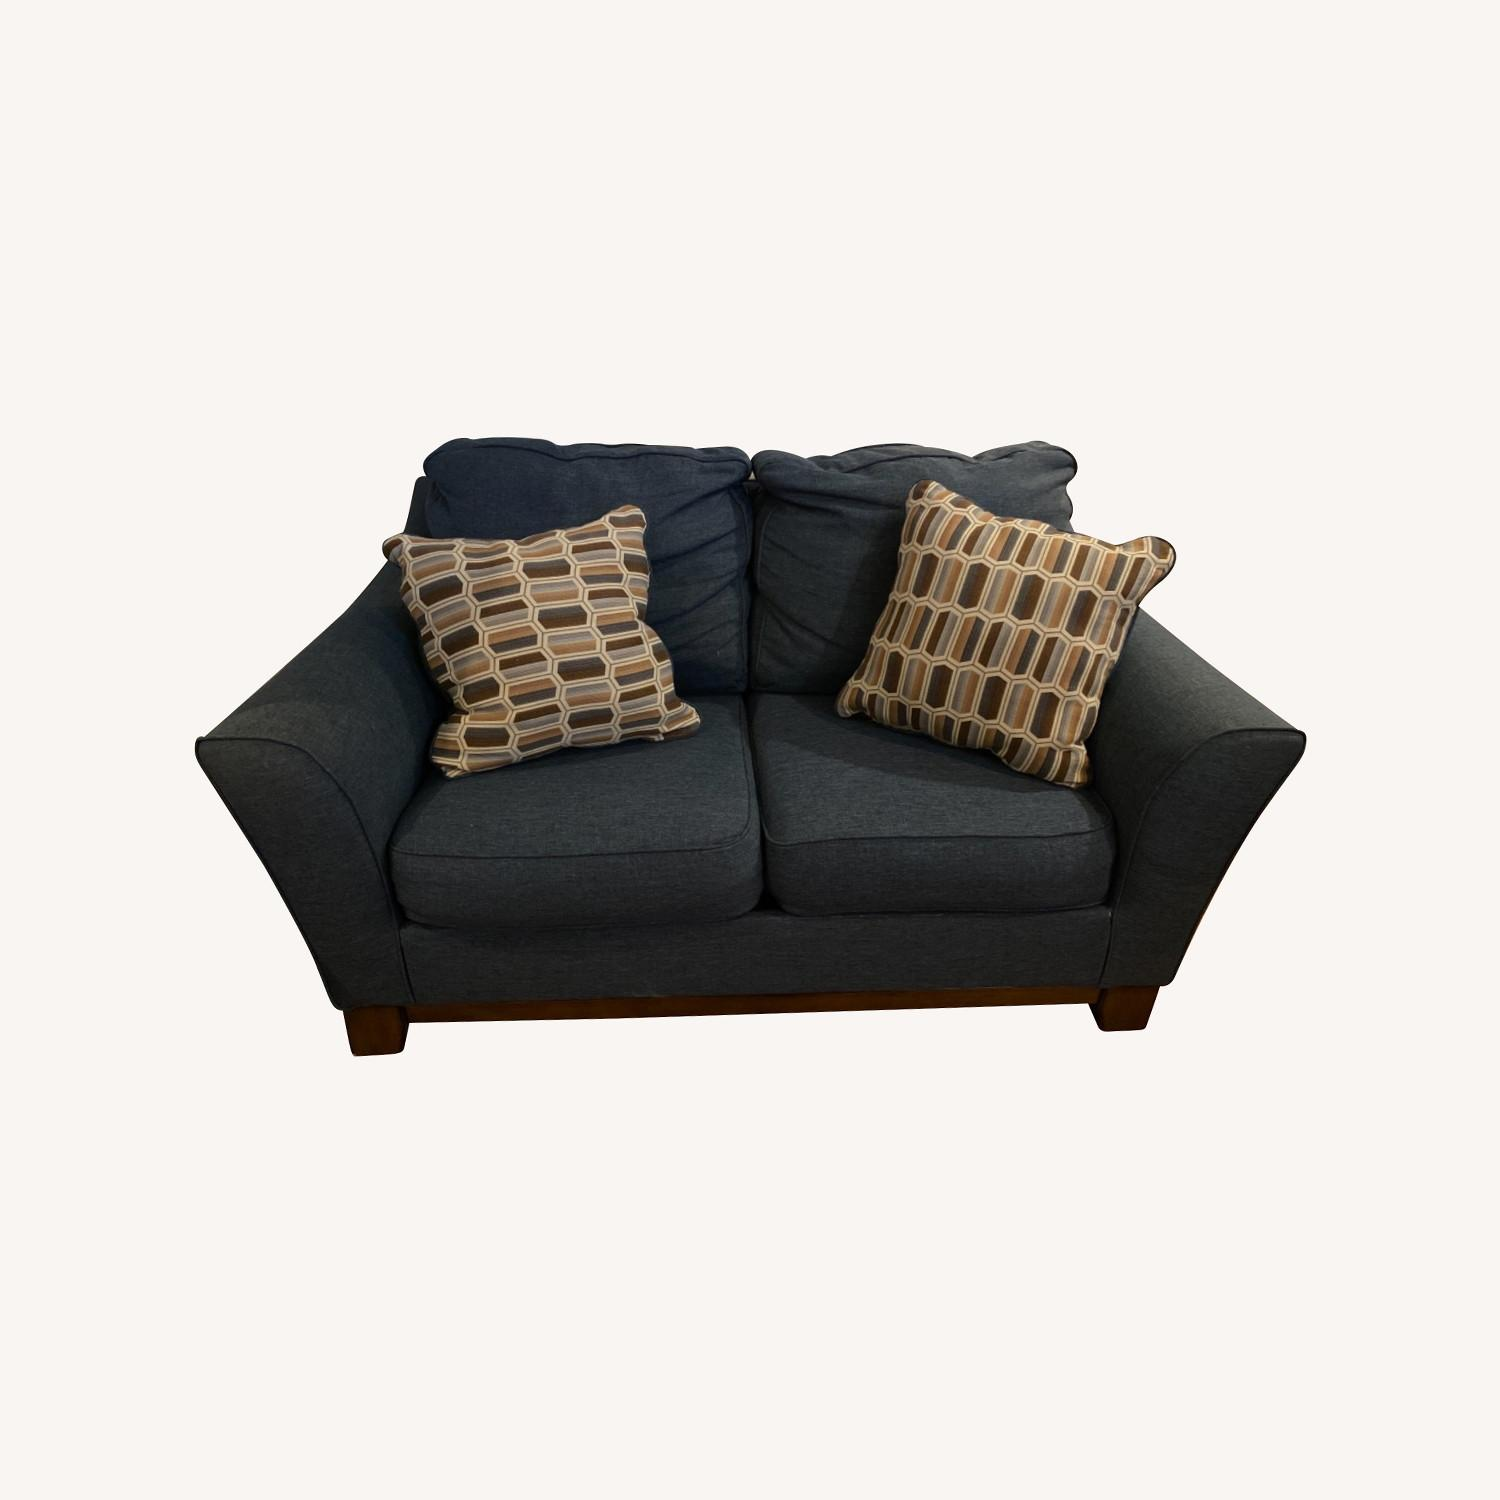 Blue Loveseat with Original Accent Pillows - image-0